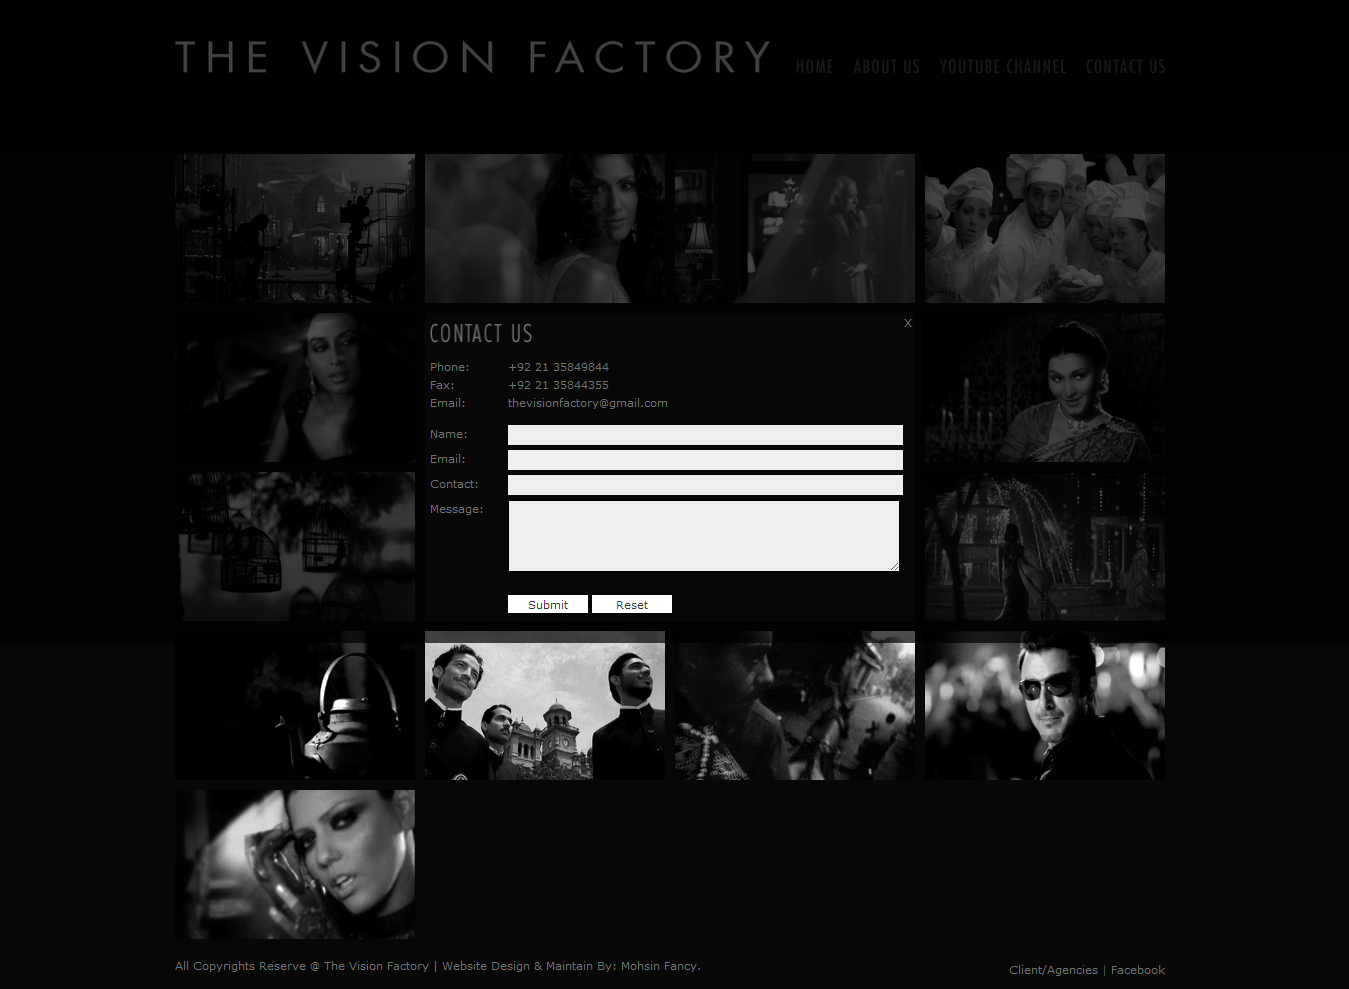 Asim Raza The Vision Factory Contac US PAGE